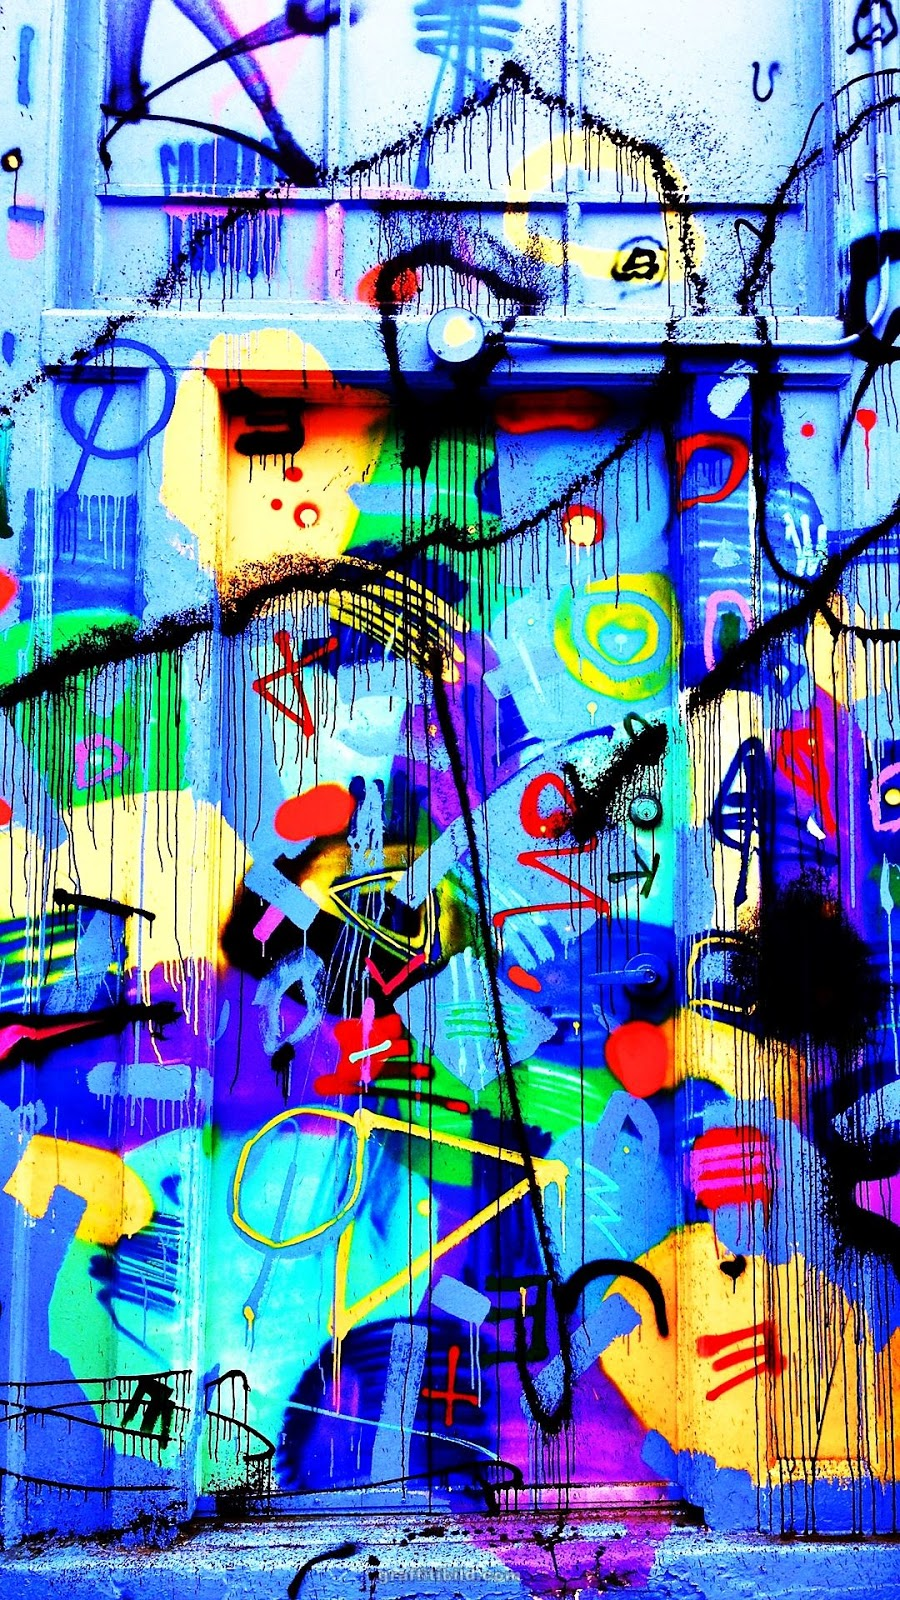 Graffiti wallpapers for mobile, android, iphone